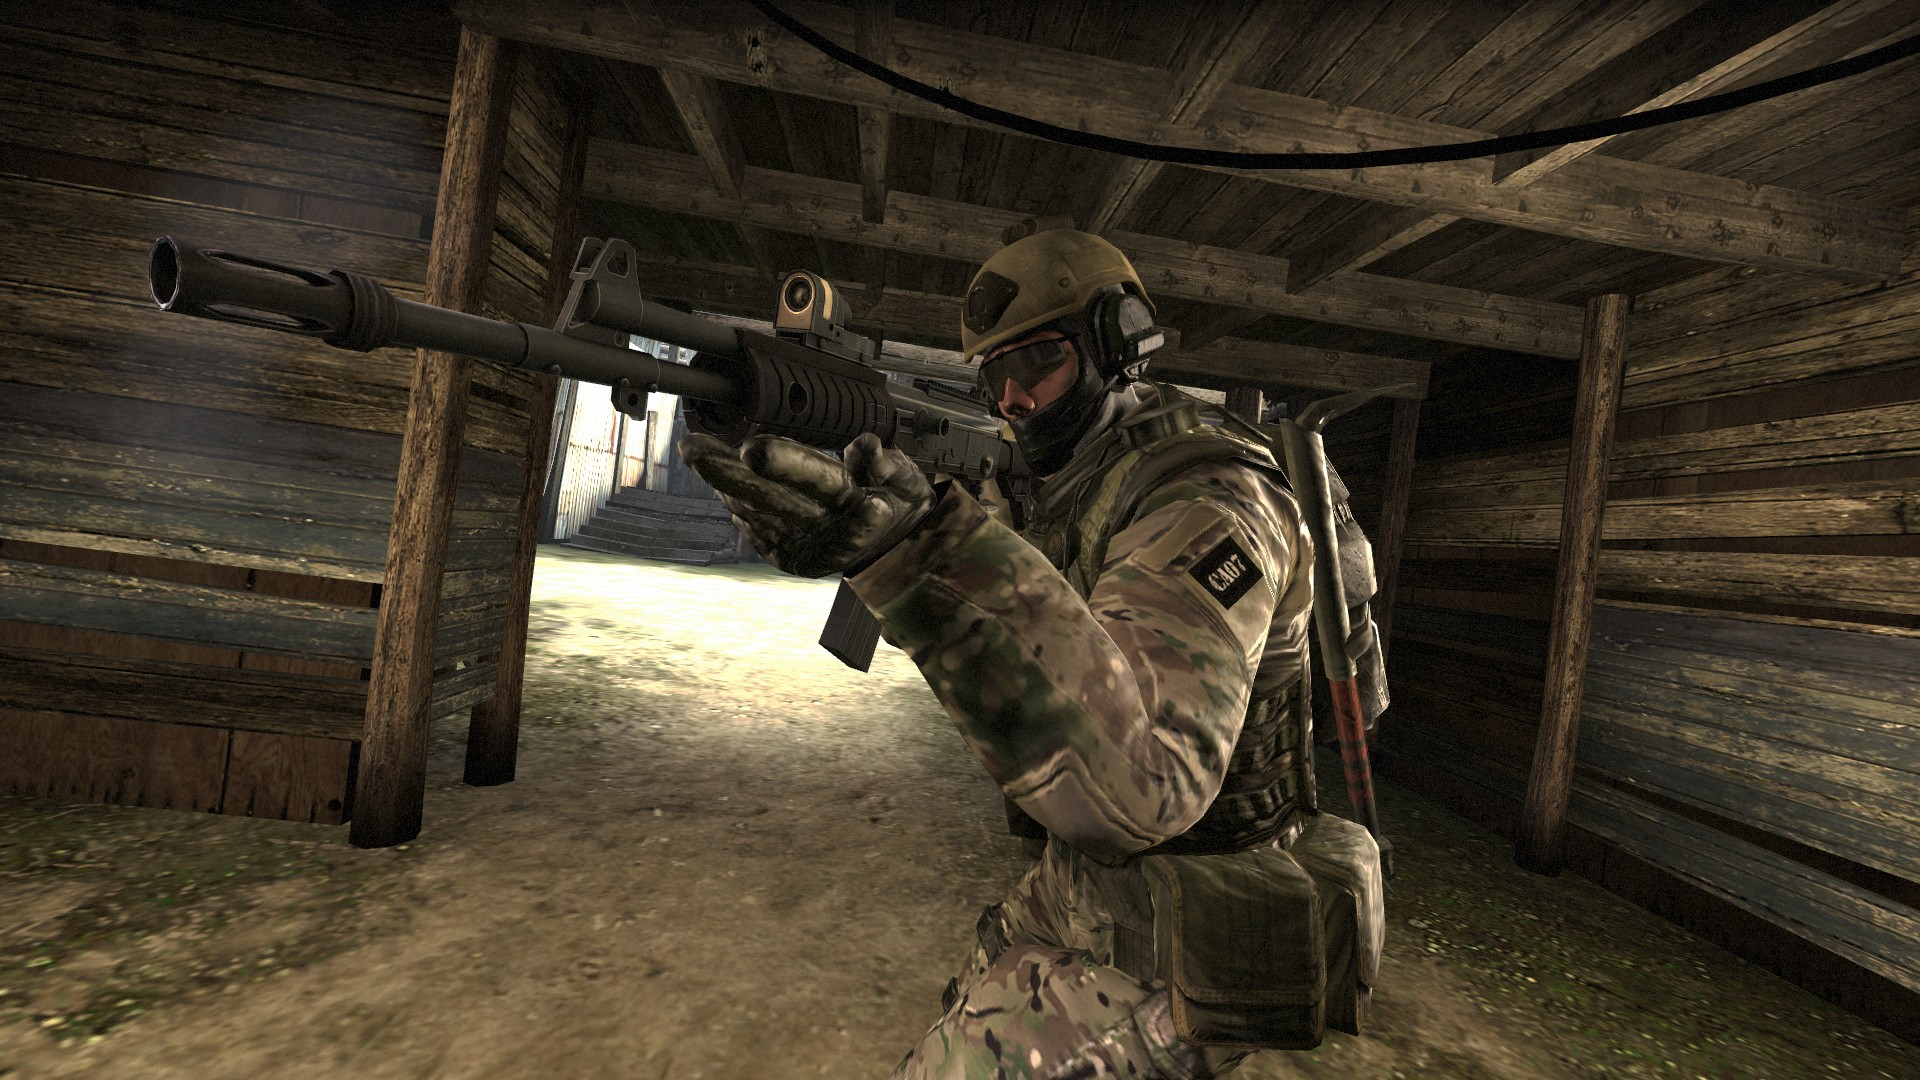 Csgo May Be Easy To Understand But Youre Still Bad At It